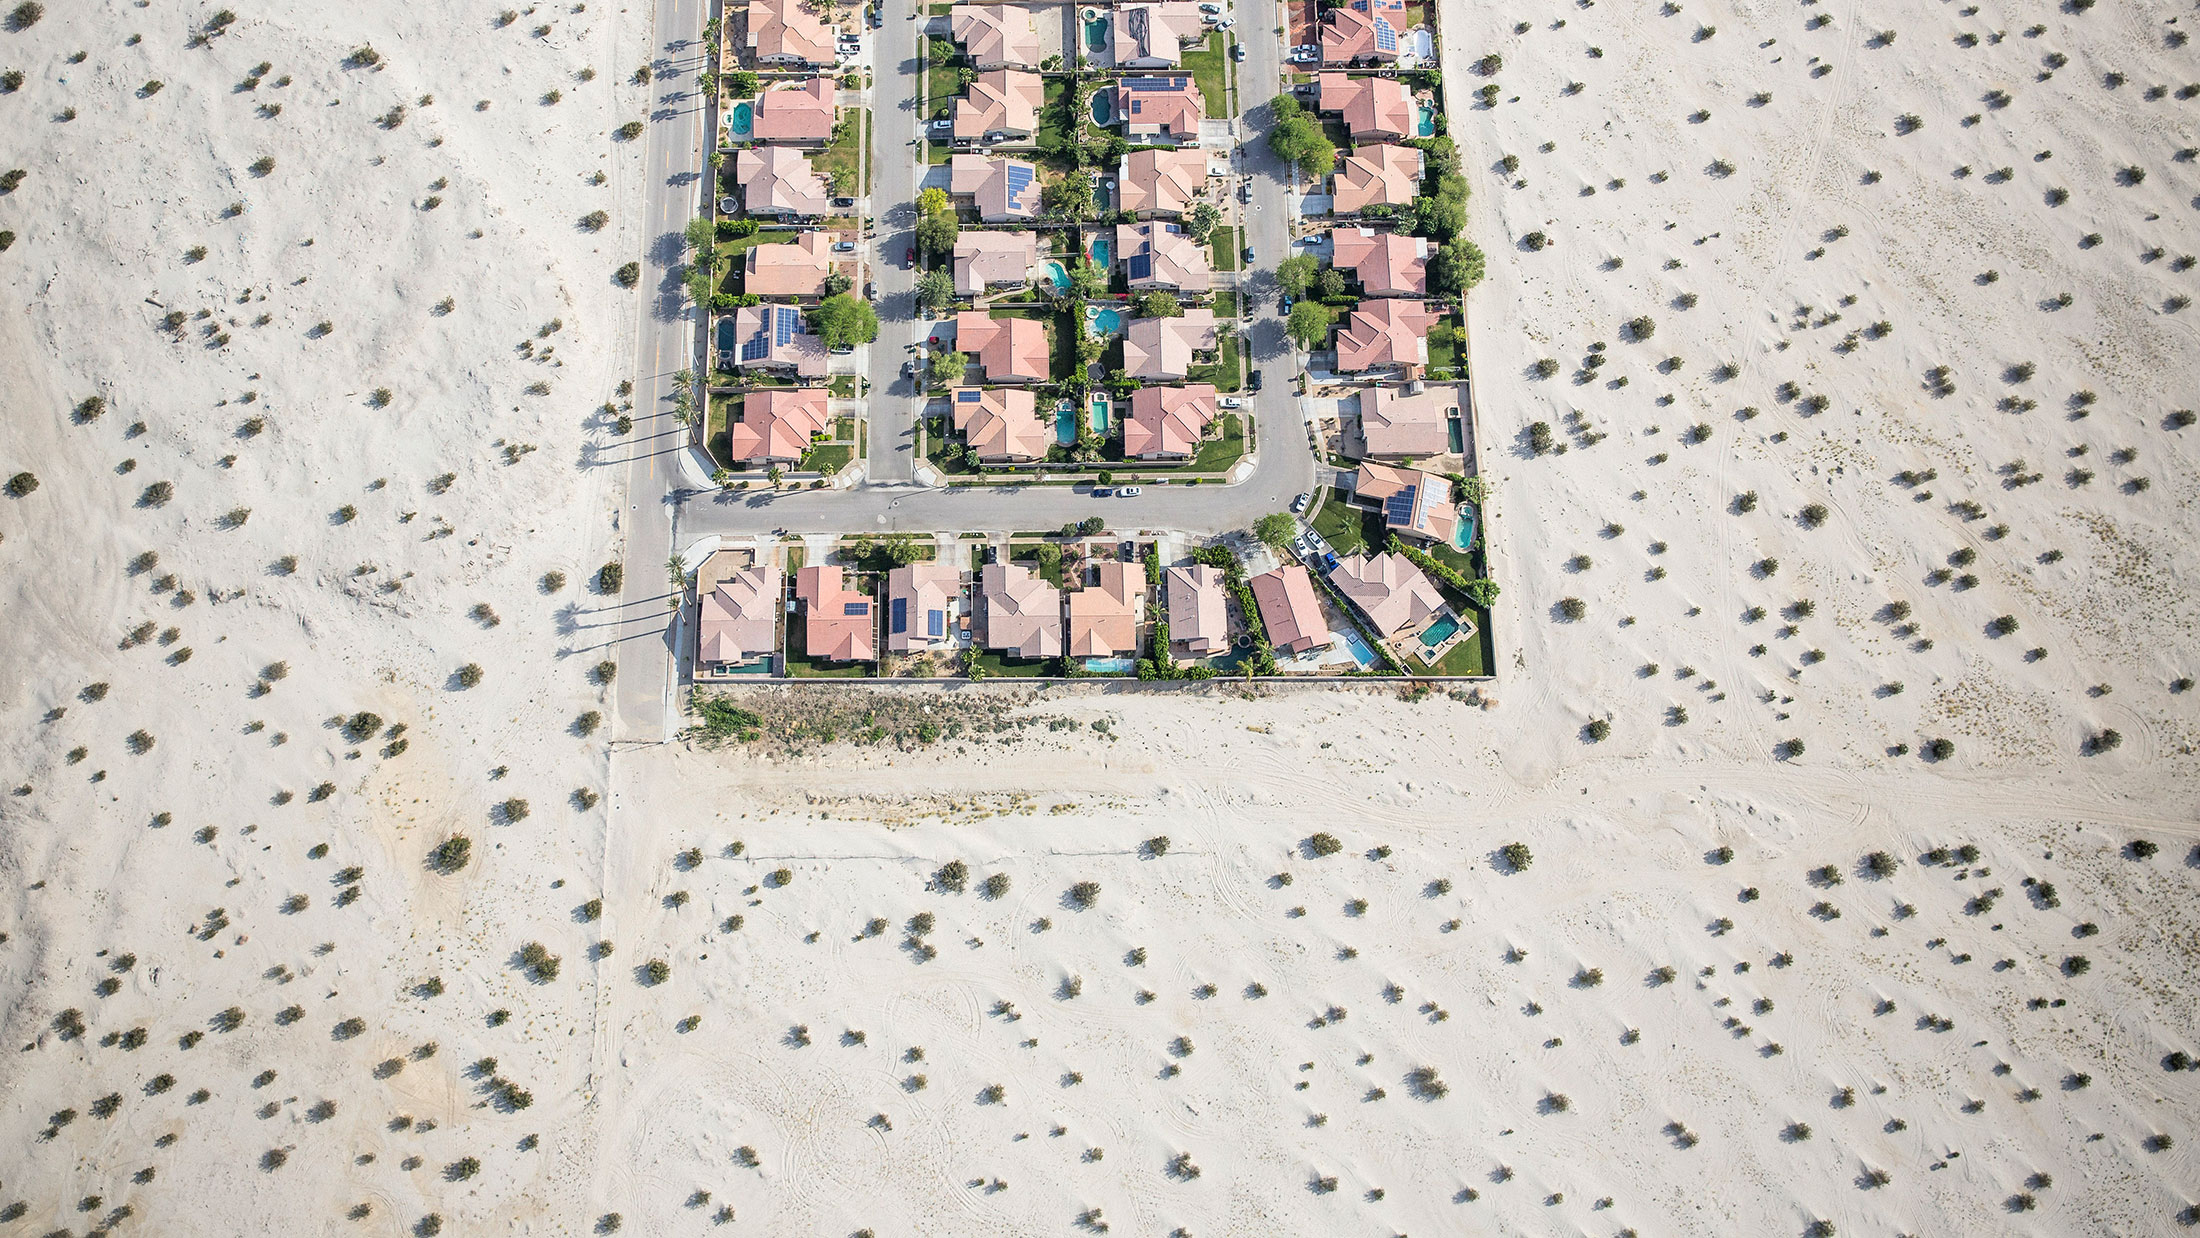 A housing development on the edge of undeveloped desert in Cathedral City, California.